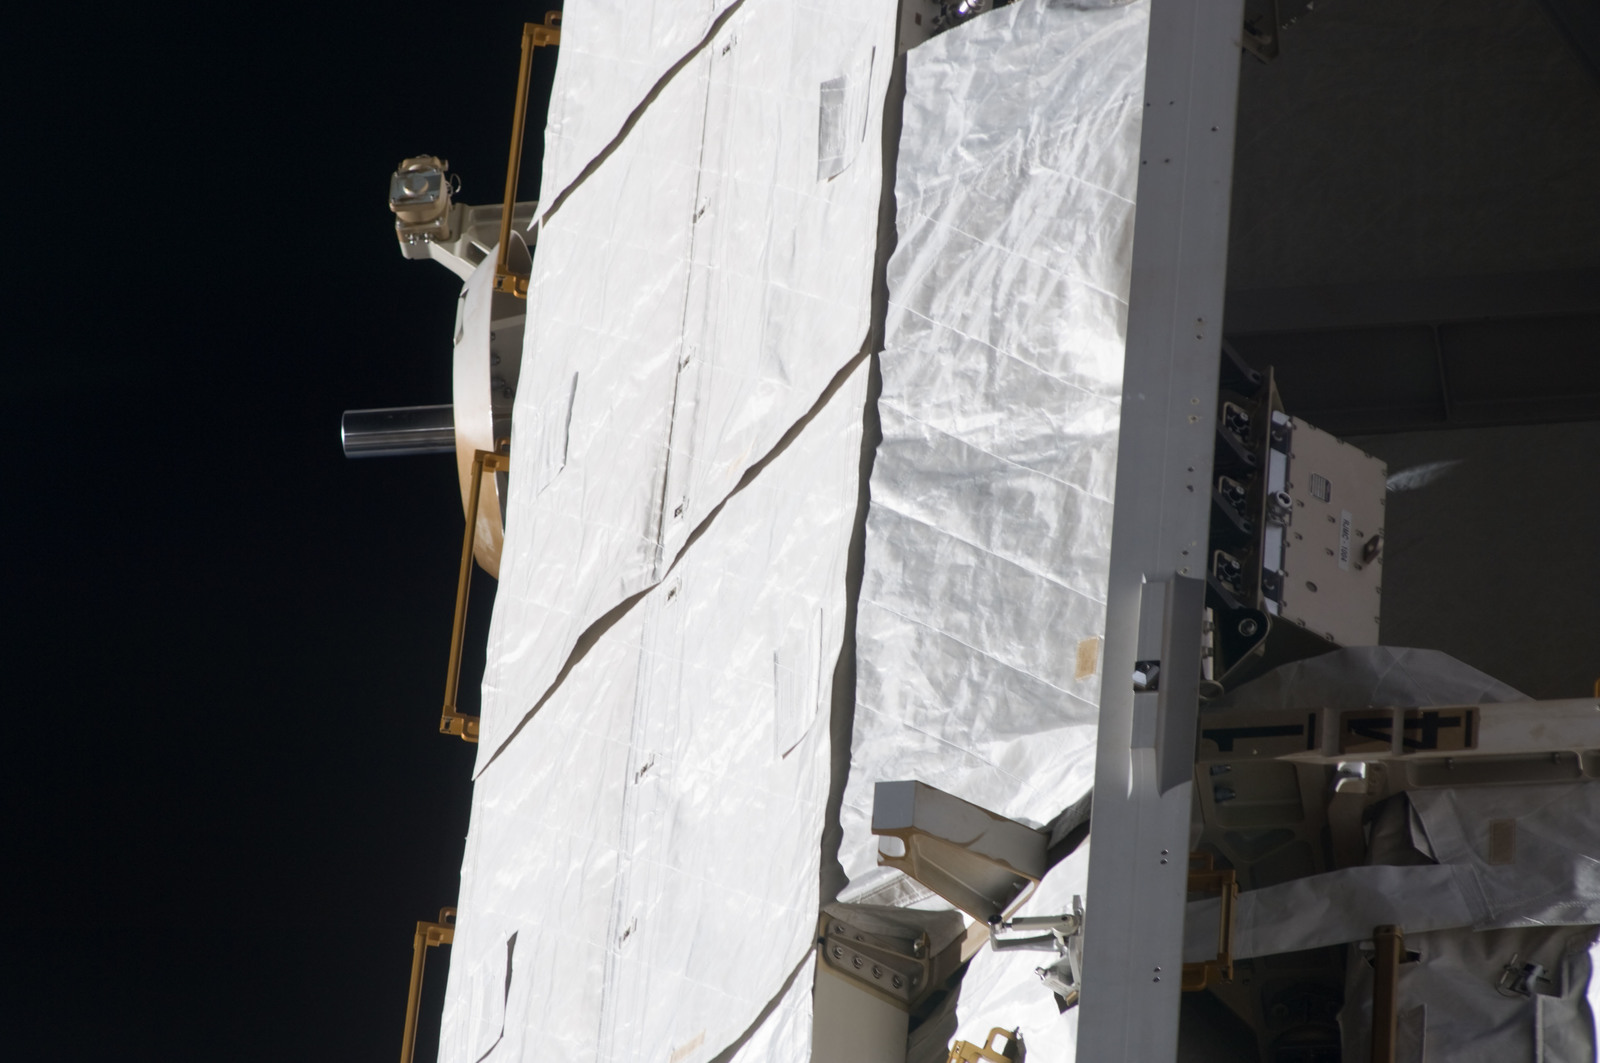 S134E009871 - STS-134 - Close-up view of P1 Truss